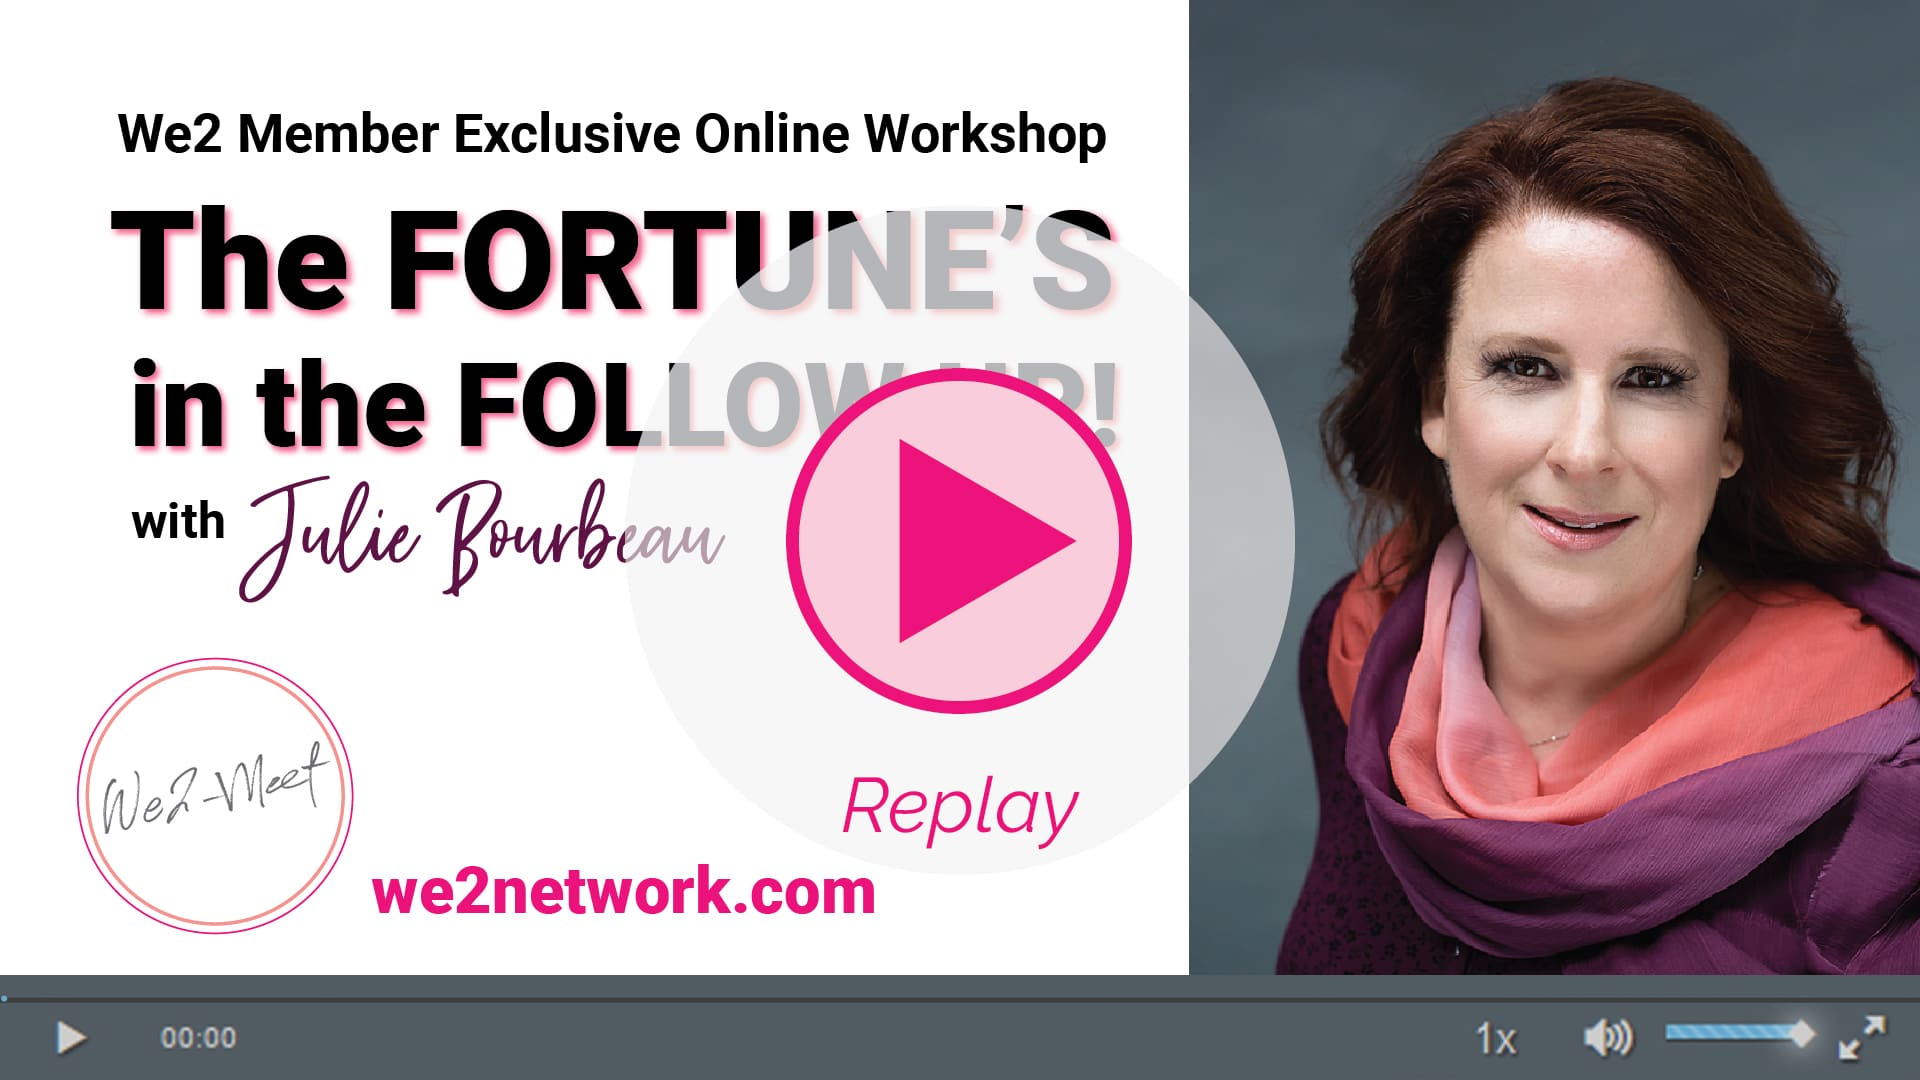 Click Here to Watch the Replay of the workshop now!